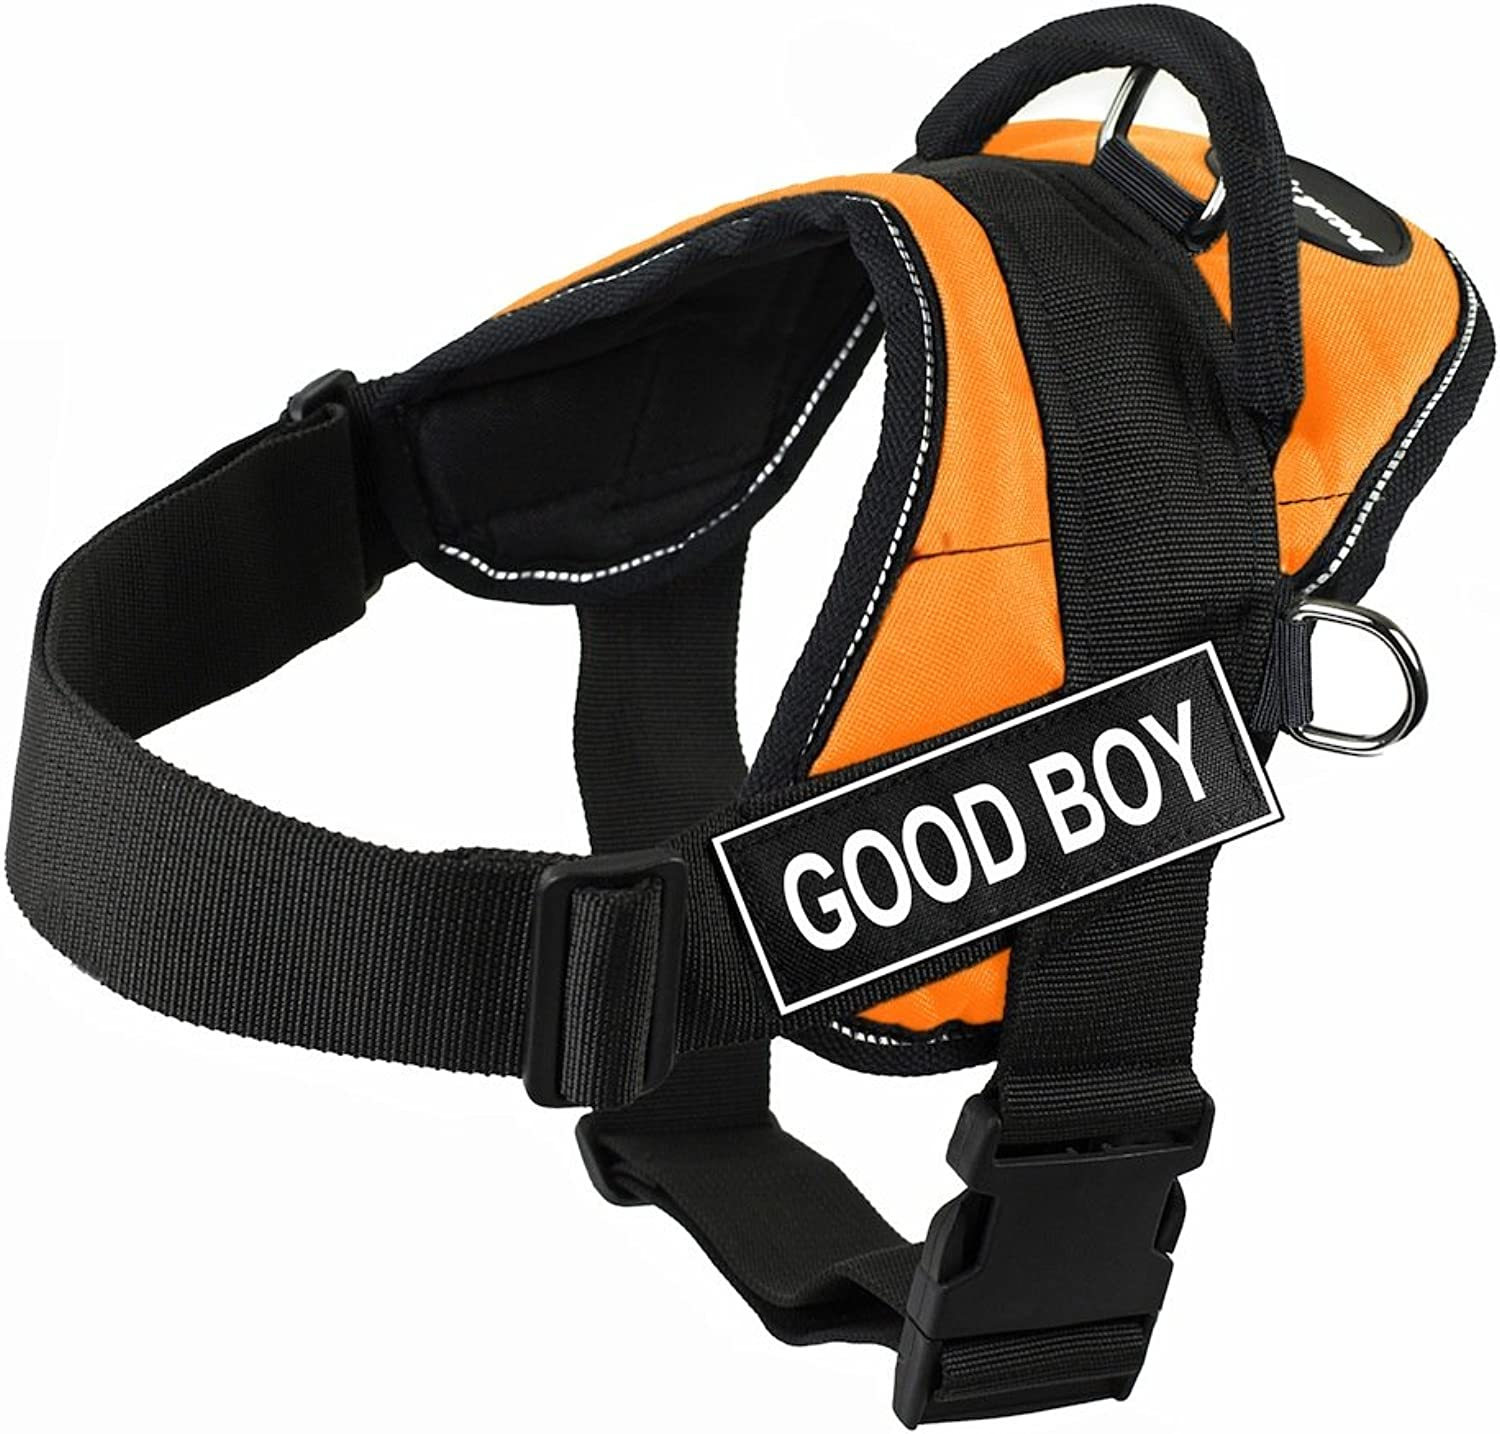 Dean & Tyler DT Fun Good Boy Harness with Reflective Trim, XSmall, orange